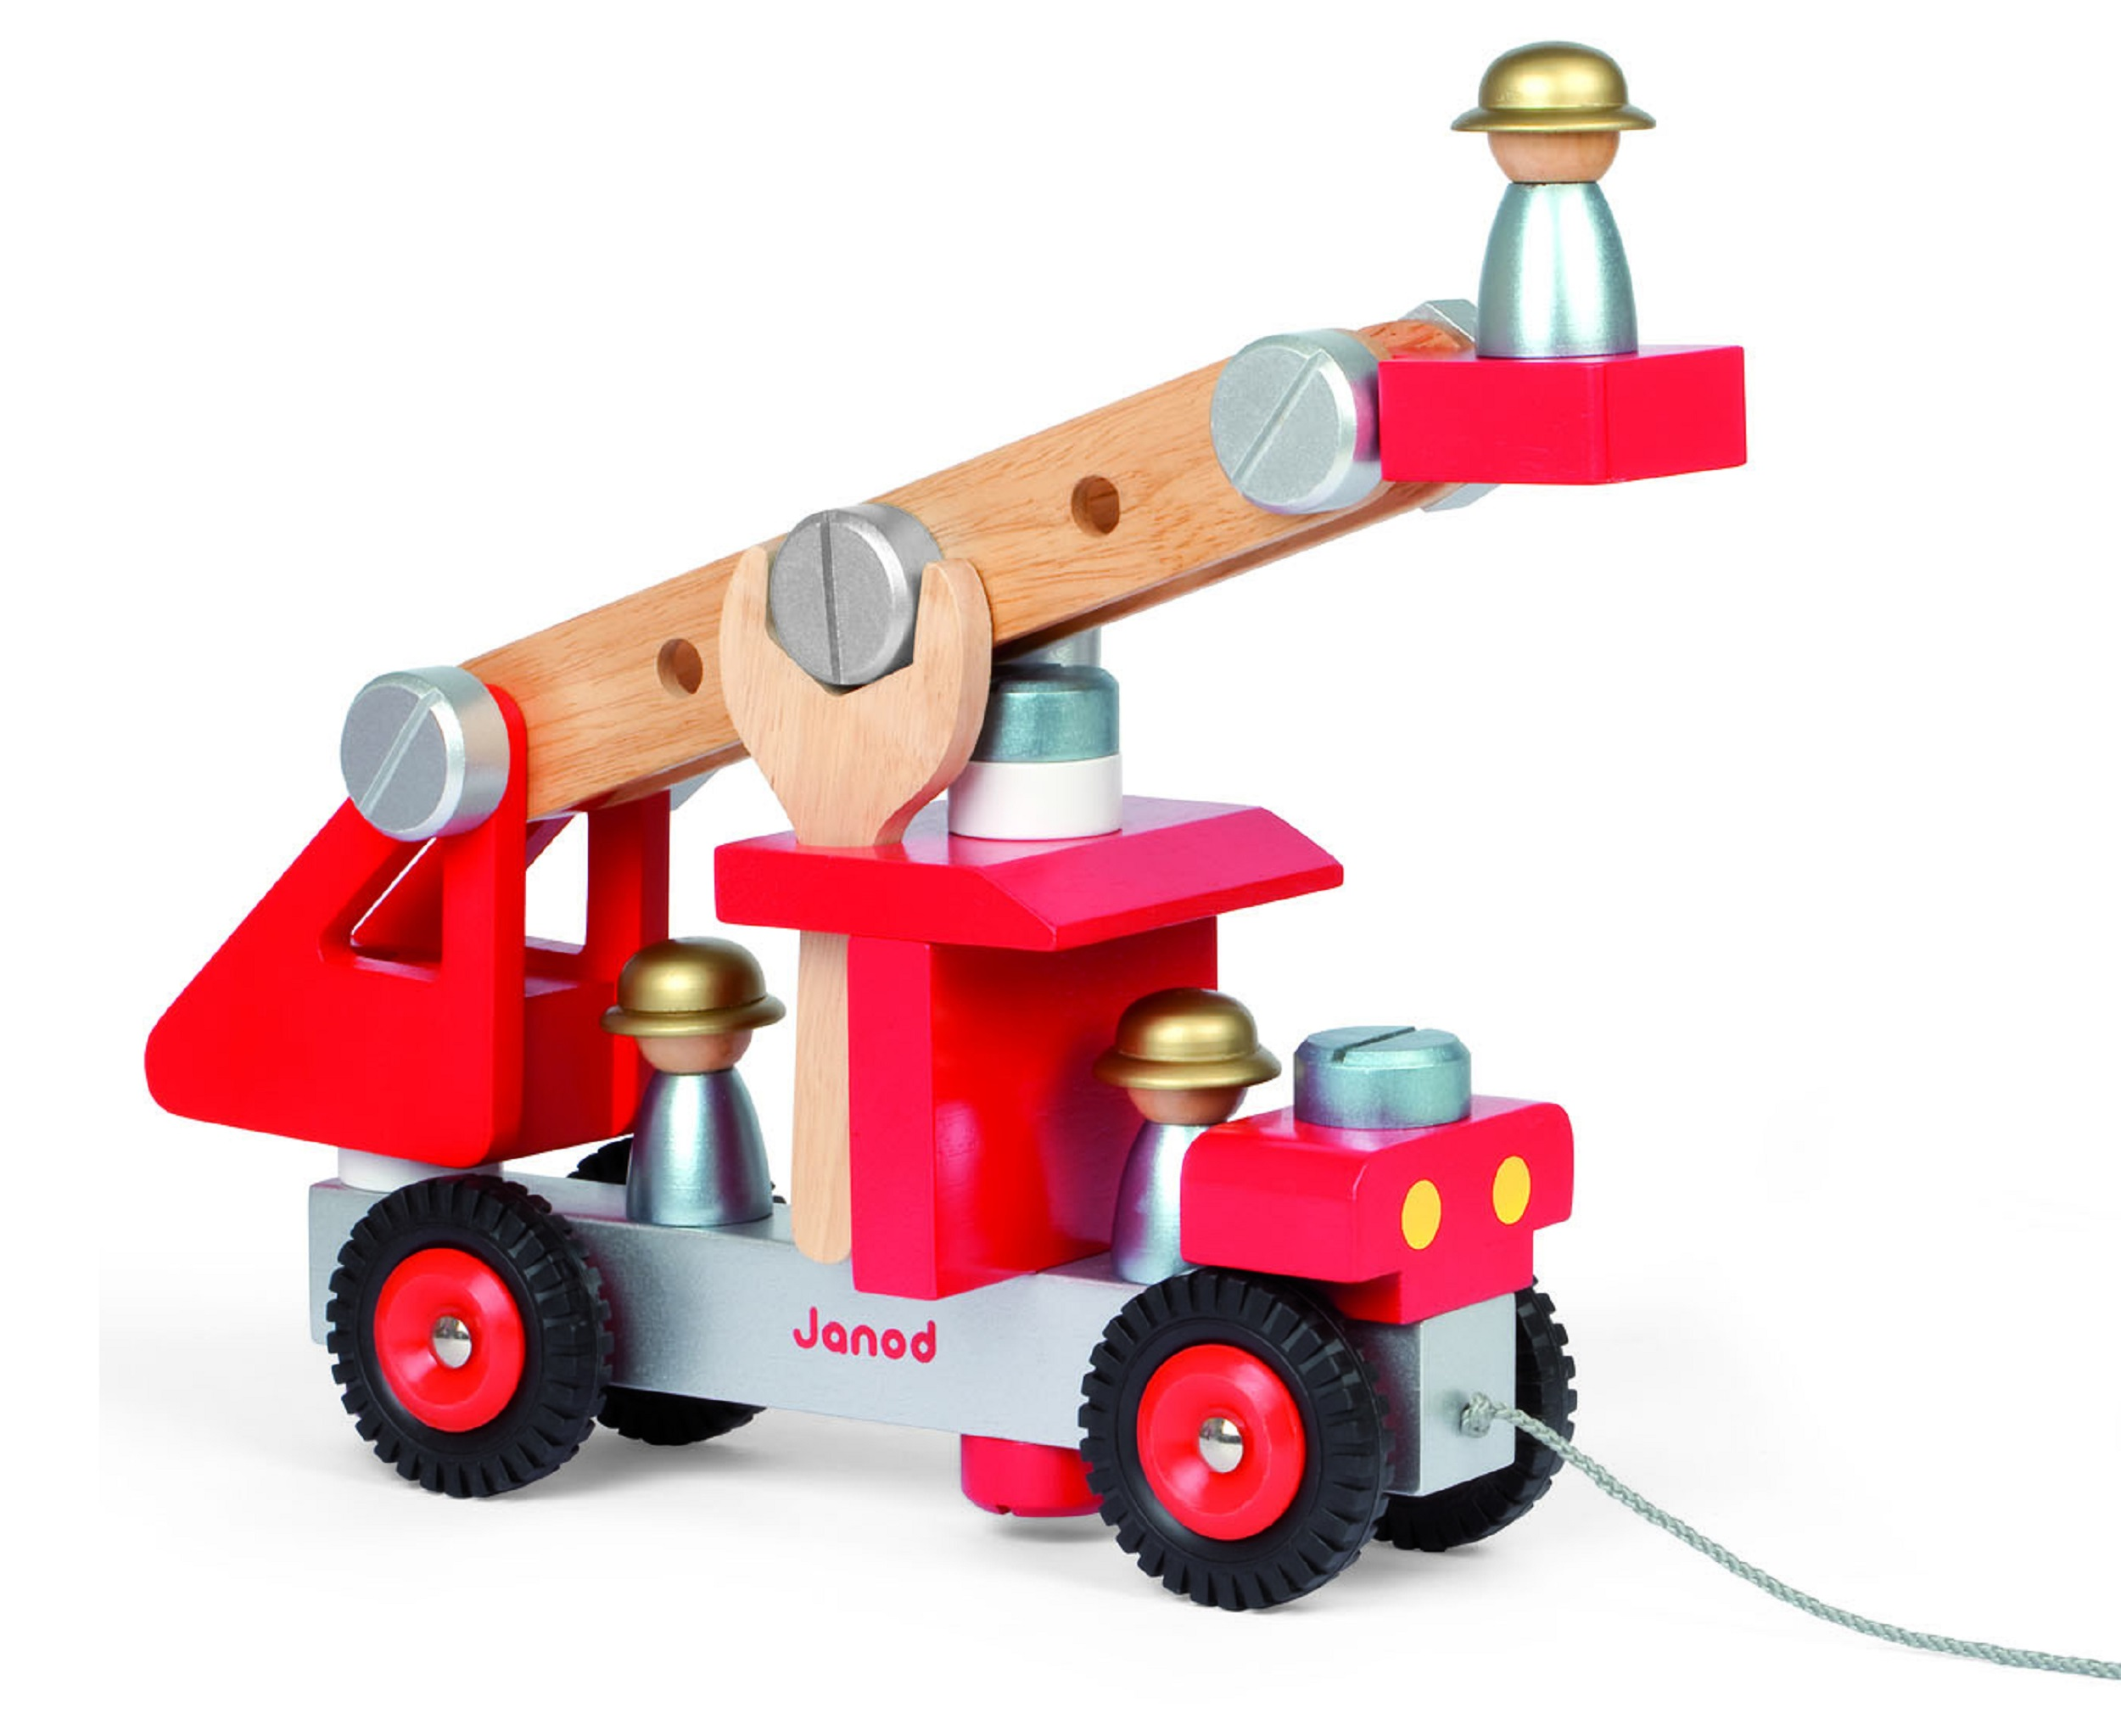 Janod build play fire engine truck